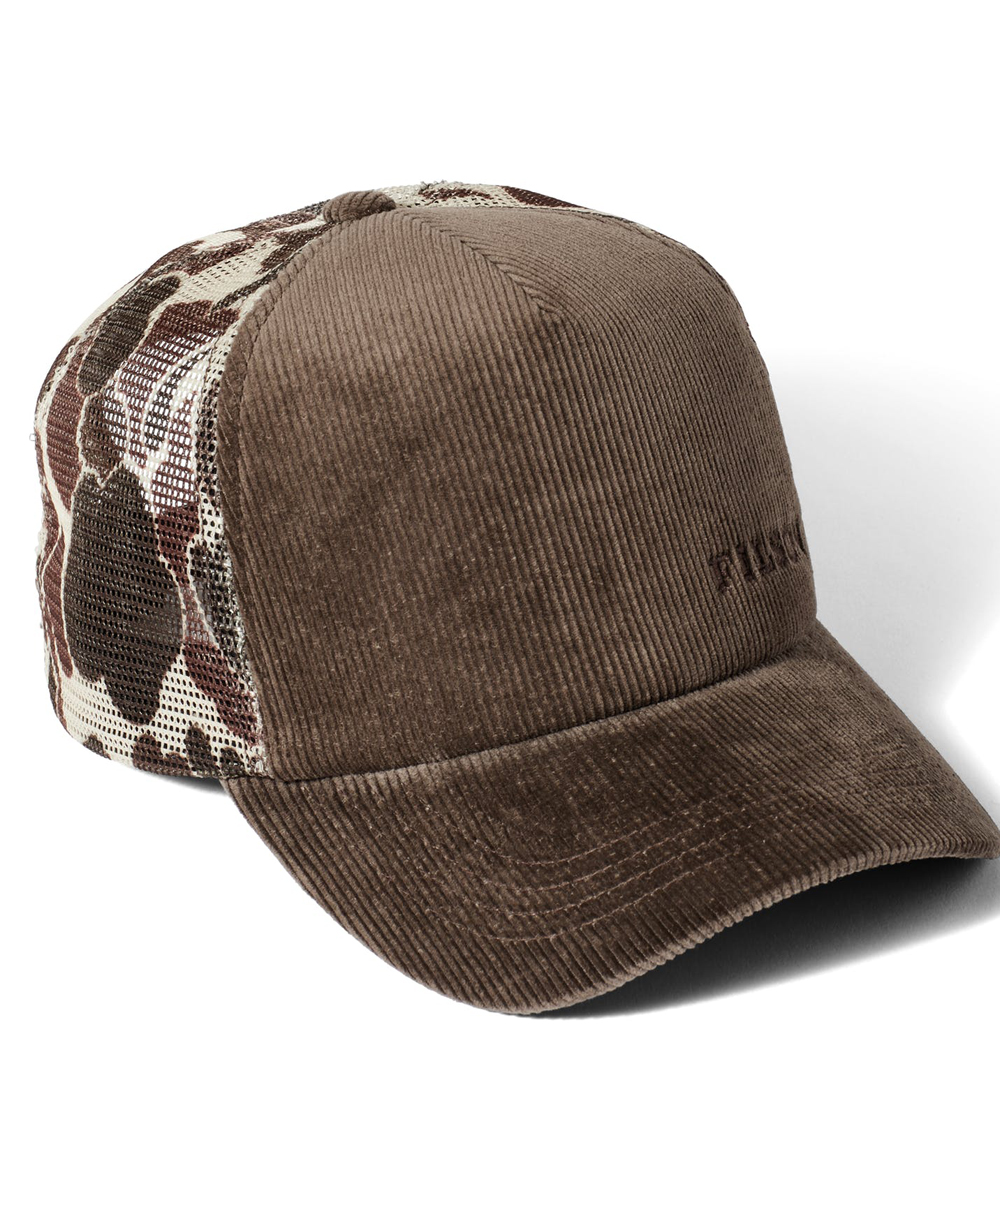 Men's Cap Alcan Cord Buck